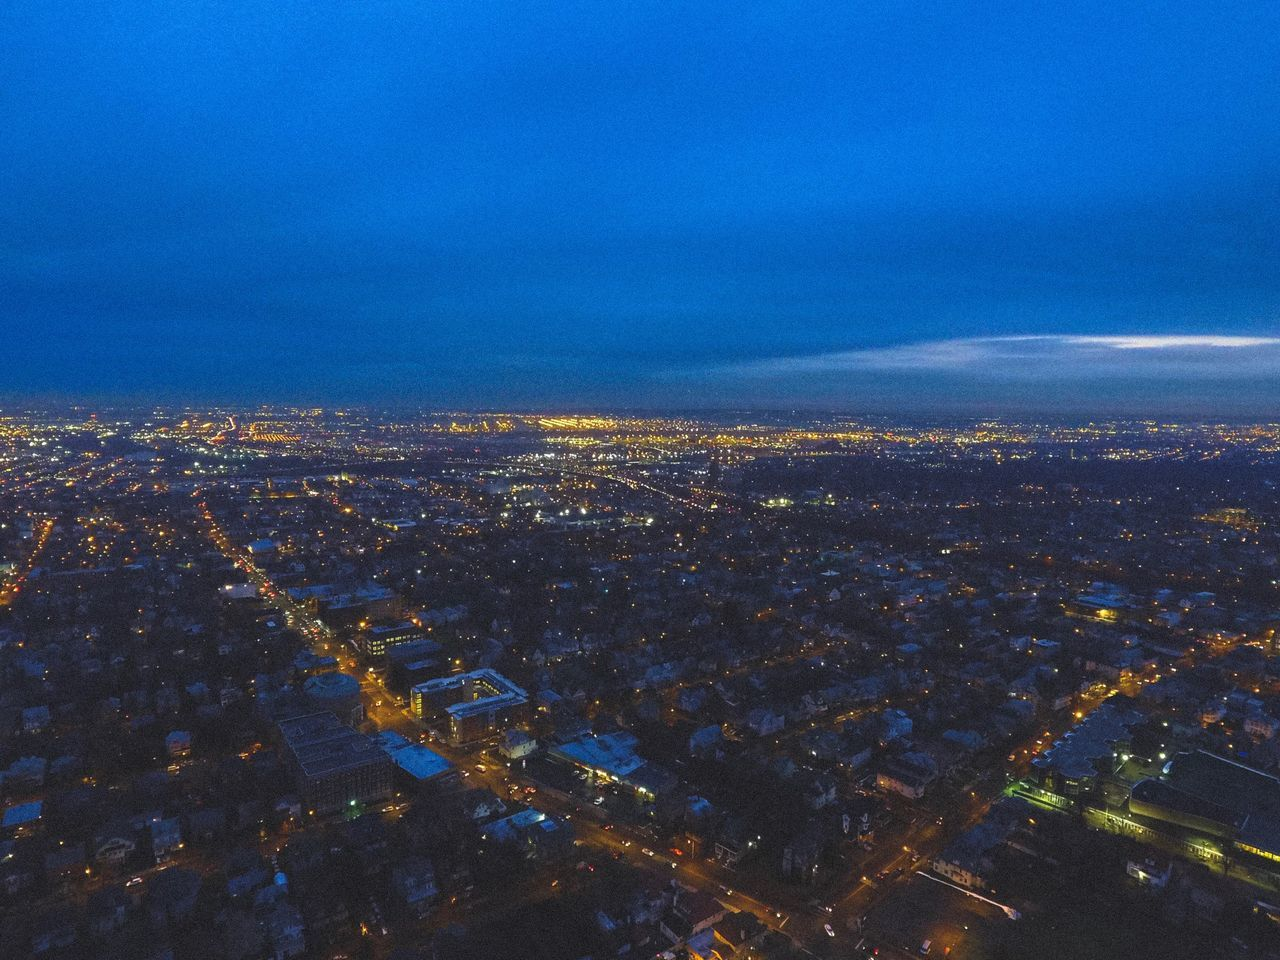 Newark at Dusk // Newark, Nj // Upper Clinton Hill ( Central Ward ) City Cityscape Architecture Aerial View Building Exterior Illuminated Built Structure Blue Outdoors Sky No People Night Scenics Nature Settlement Scenic Lookout Dusk New Jersey Newark Photography High Angle View